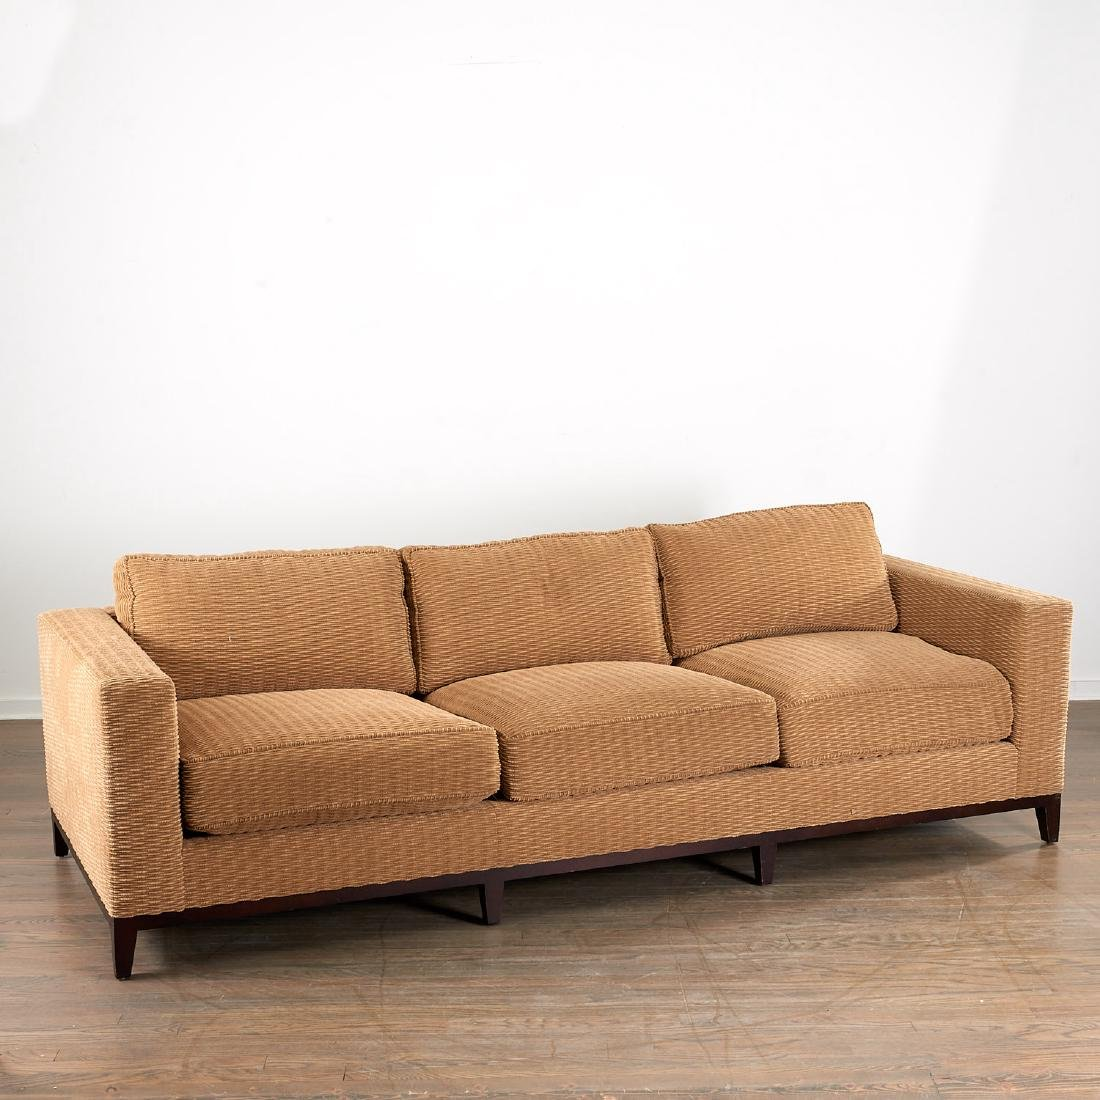 Christian Liaigre for Holly Hunt Mousson sofa